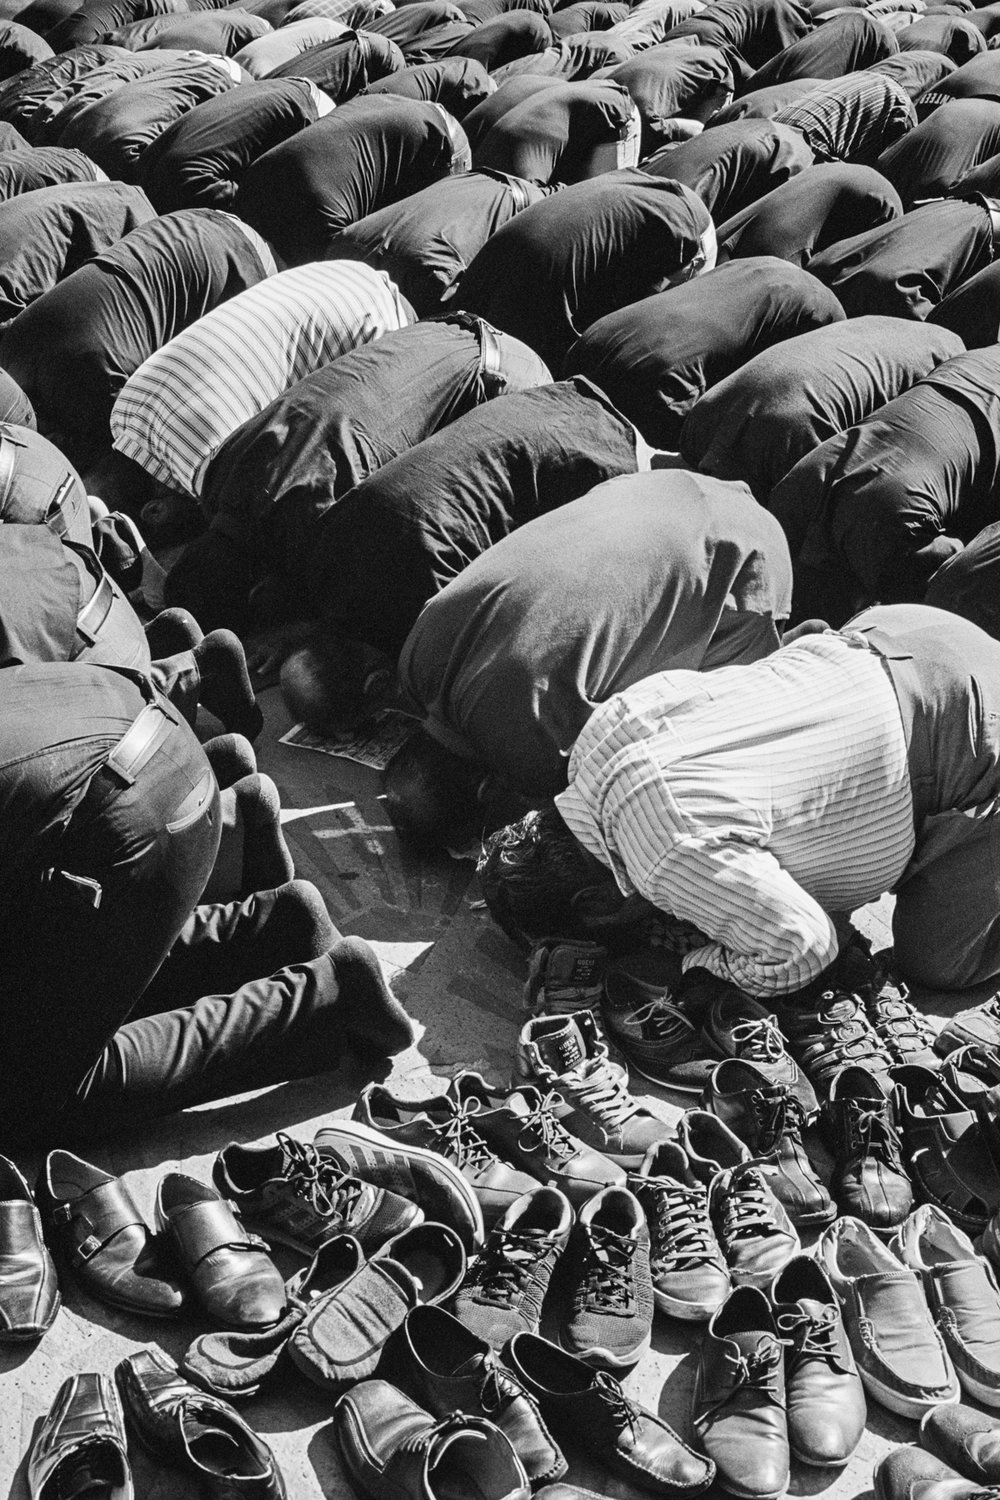 Los Angeles, California, 2016. Men praying after a procession in commemoration of Husayn ibn Ali.